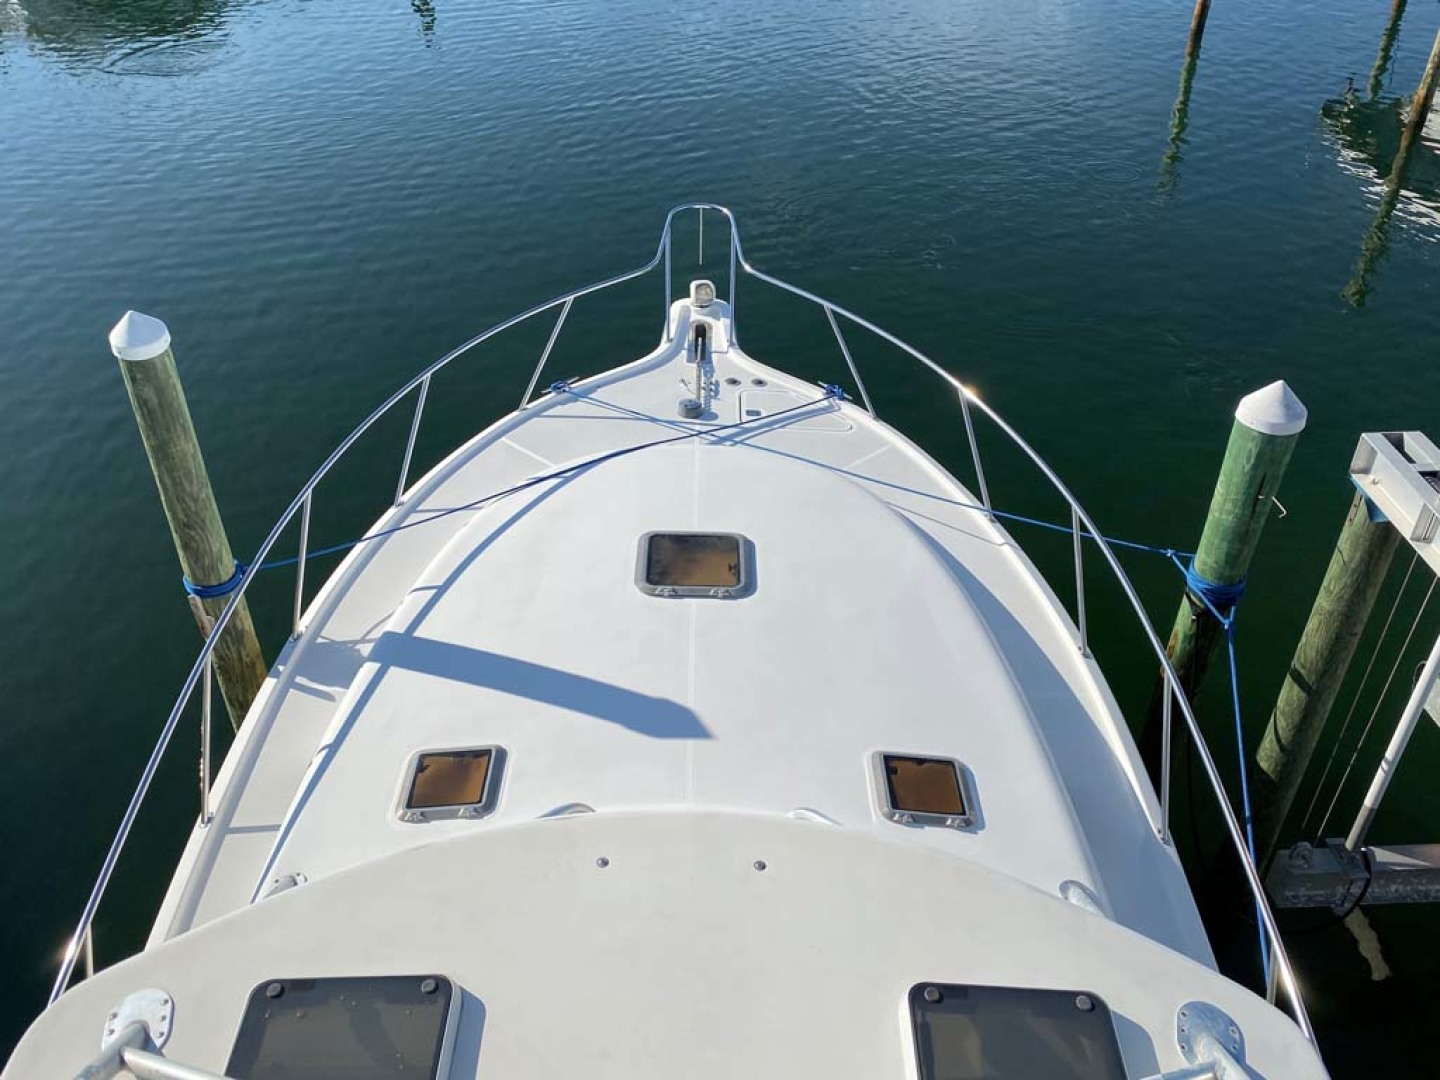 Pursuit-3800 Express 2002-Going Deep Destin-Florida-United States-Foredeck From Tower-1276699 | Thumbnail